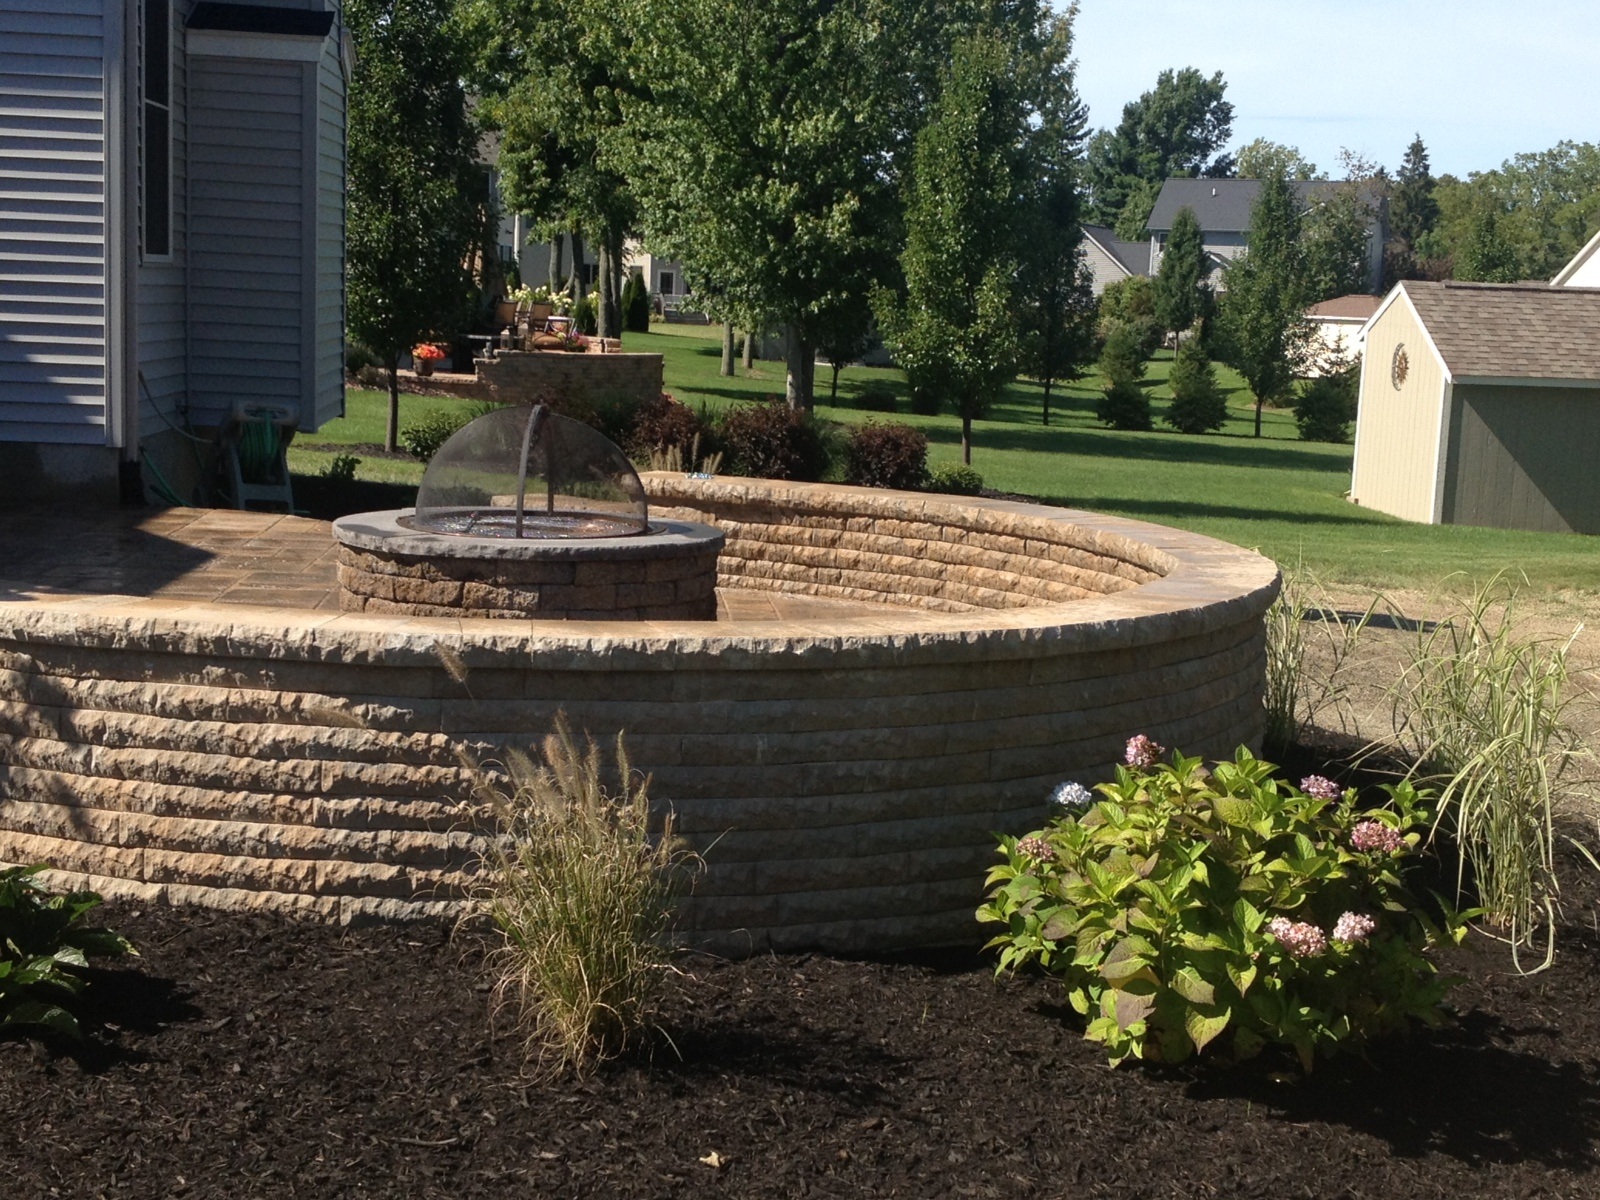 Bear Creek Landscaping | The Hardscape and Landscape Experts!